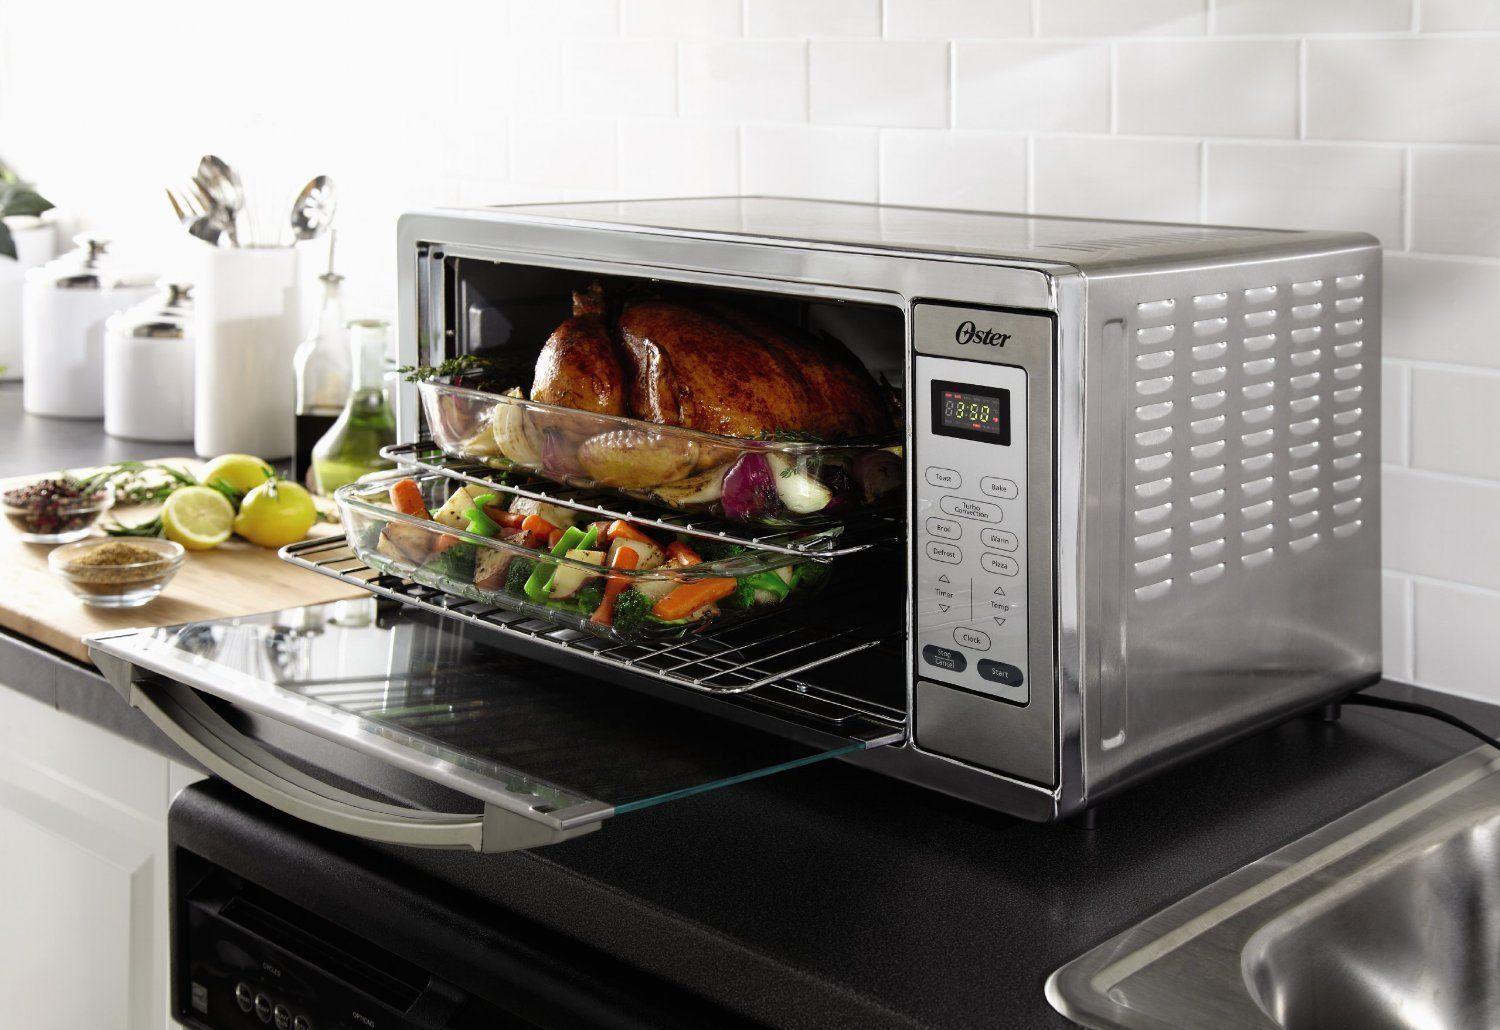 Countertop Convection Oven With Microwave : Convection Countertop Stove Microwave Conventional Pizza Turbo Oven ...